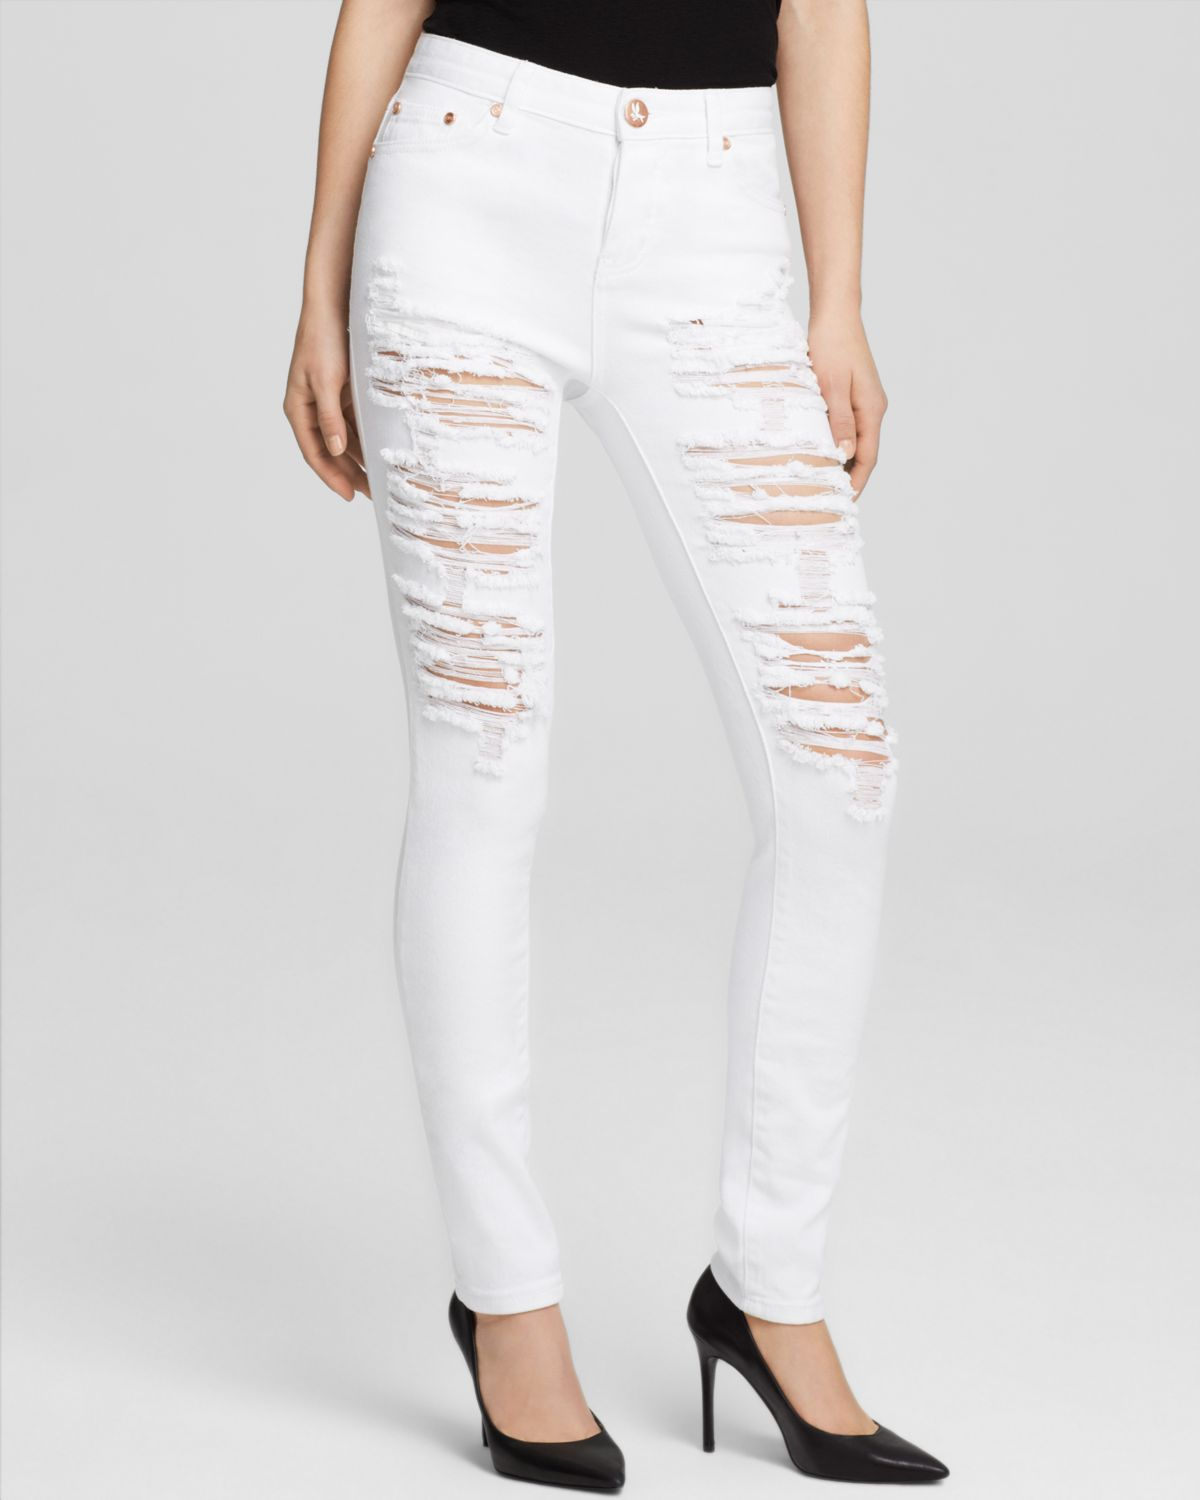 Washing White Jeans - Jeans Am